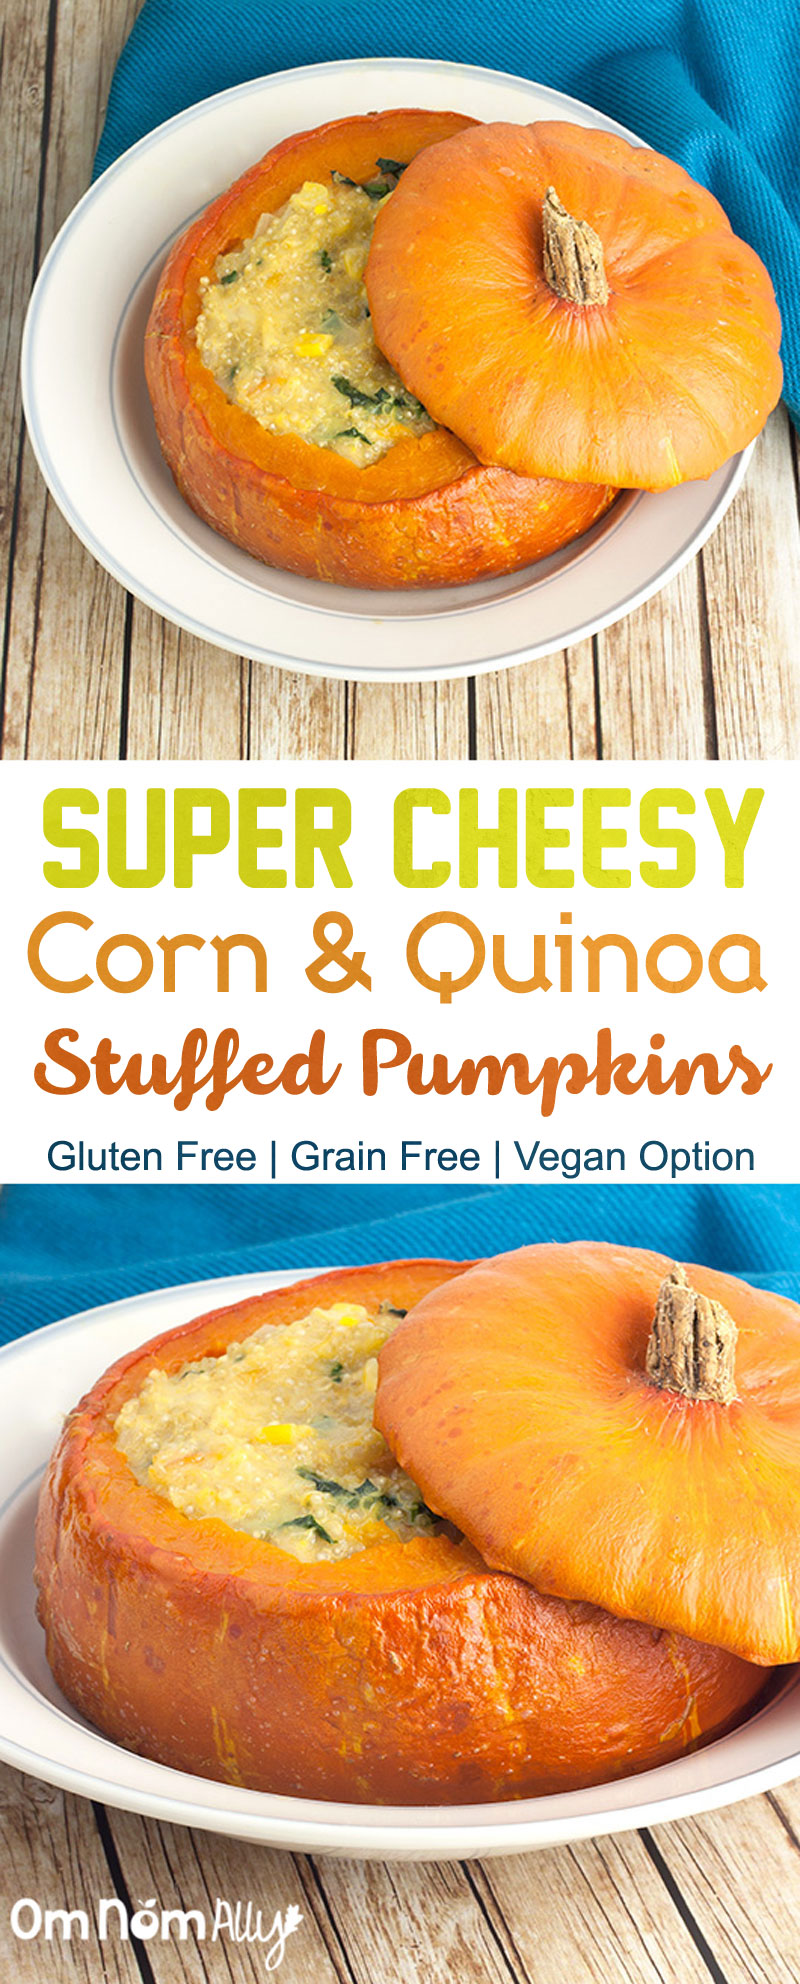 Super Cheesy Corn & Quinoa Stuffed Pumpkins @OmNomAlly | These Golden Nugget pumpkins were just made for stuffing - with thin, edible skin you can eat your cheesy corn and quinoa stuffing and then your pumpkin bowl too!